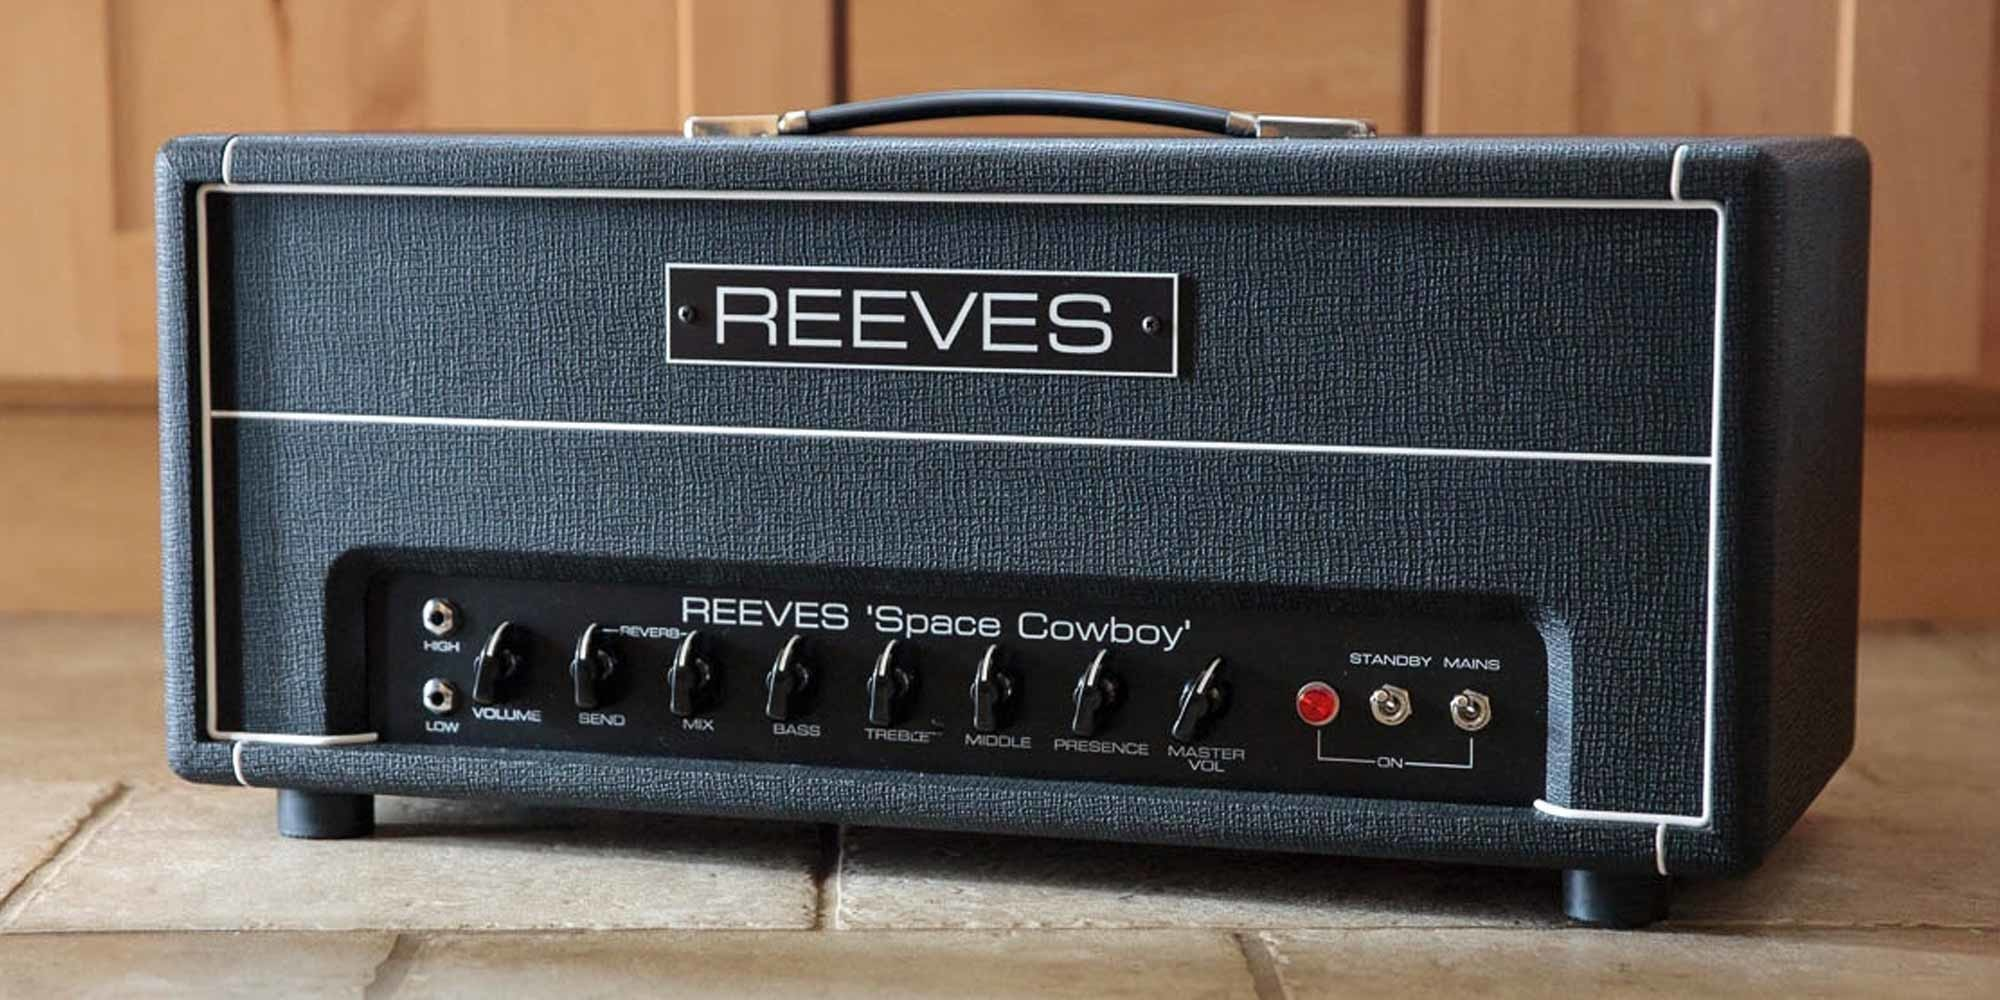 Daves Corner Boutique Amp Guide Part Vii Reverb News Audio Power Mid High Amplifier Portable Speaker Of The Gets Us To 42 Makers And Were Far From Finished With Many Great Amps Yet Come This Installment Rolls Out Plenty